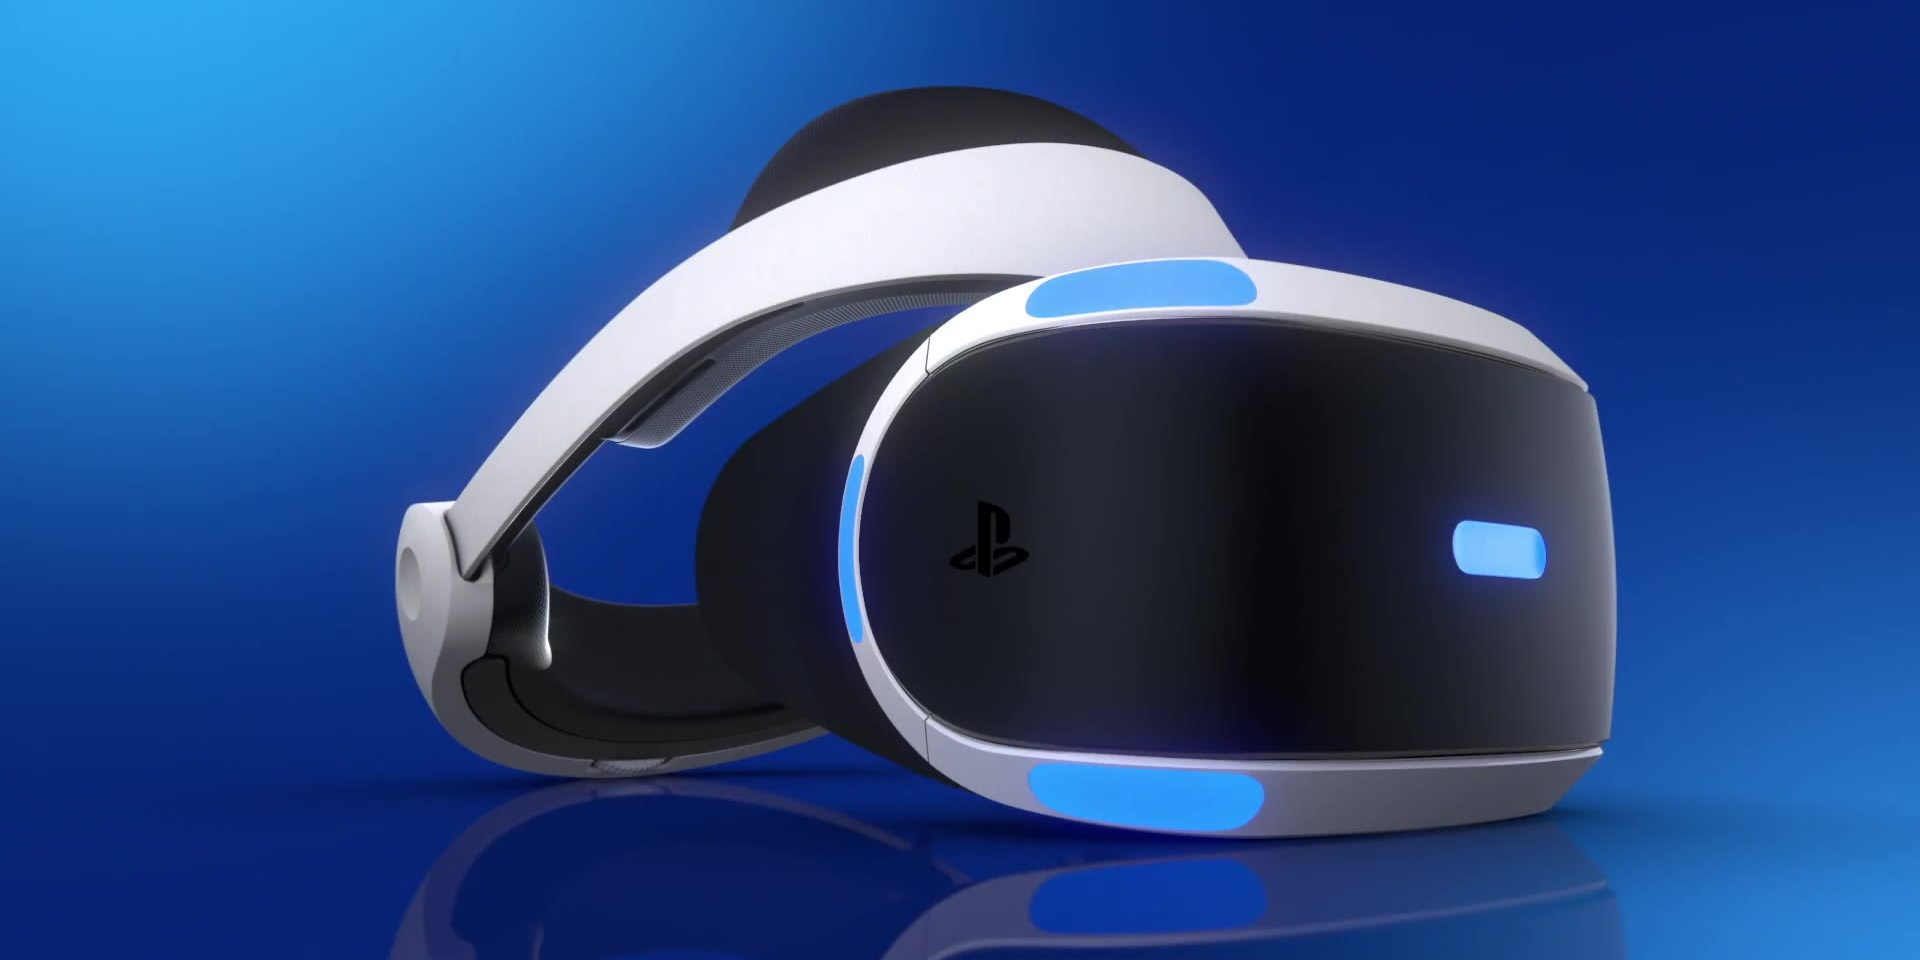 Next Generation PSVR hardware?